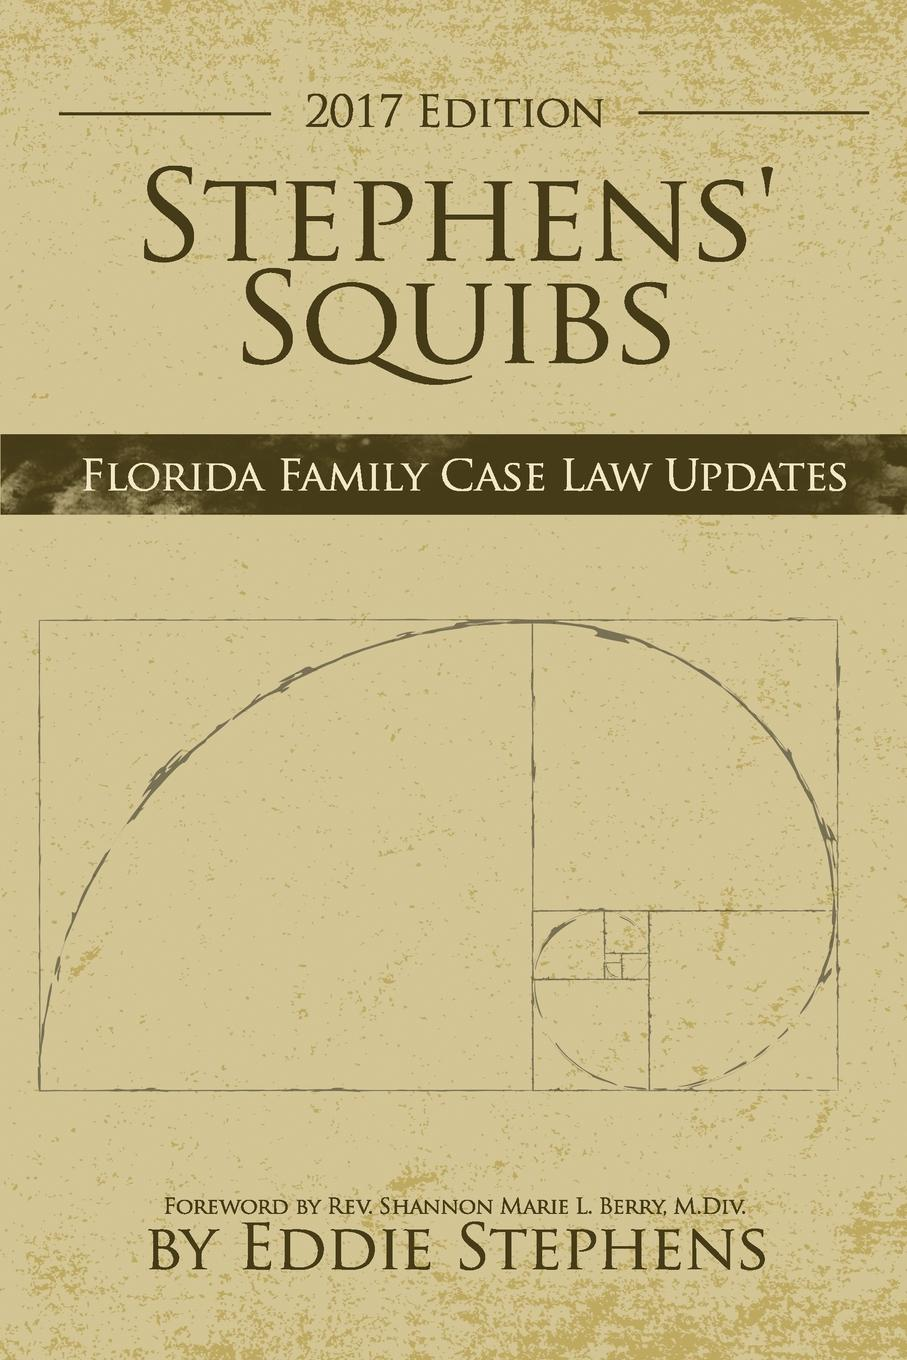 Eddie Stephens Stephens. Squibs - Florida Family Case Law Updates - 2017